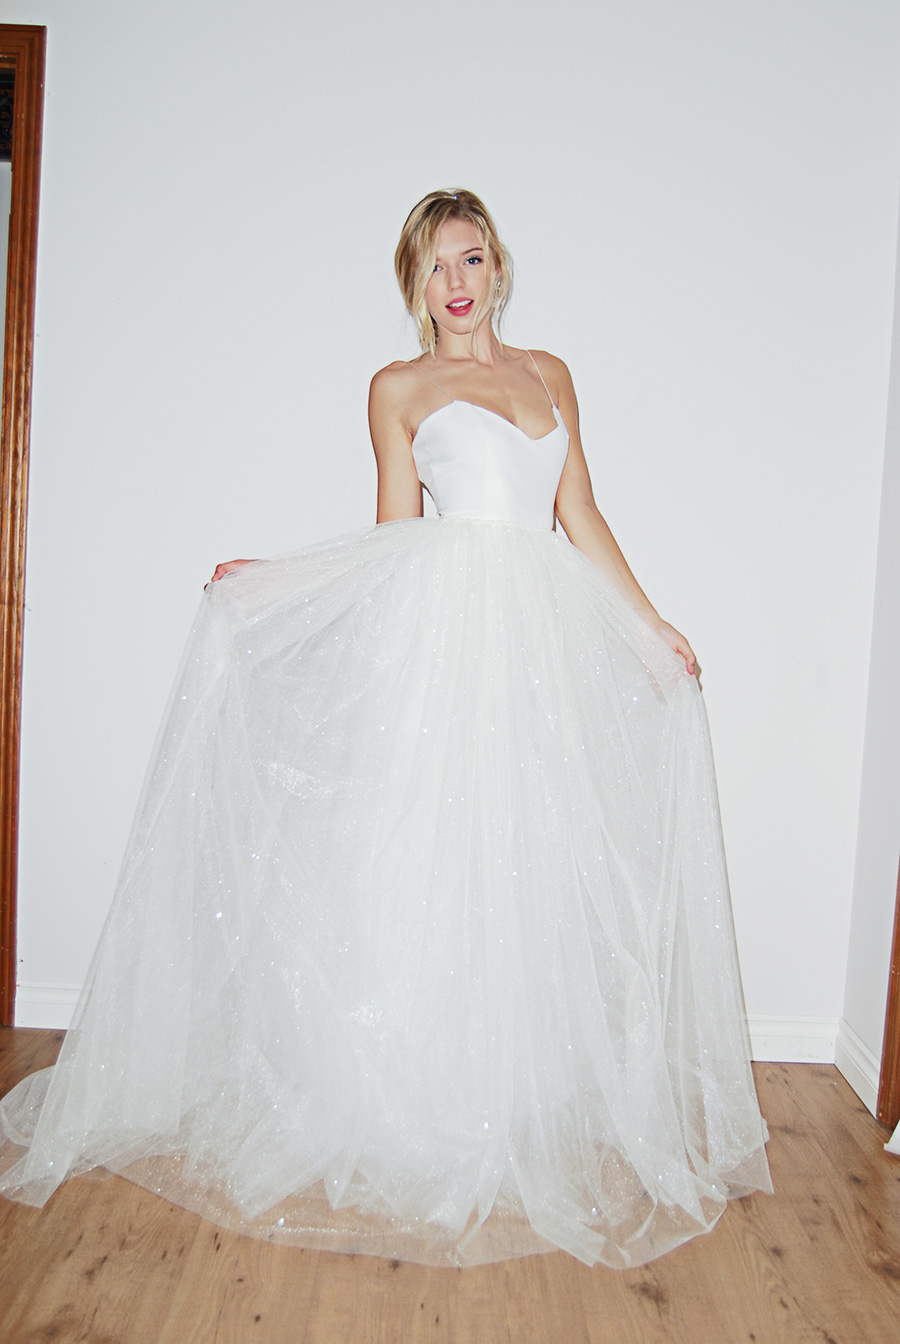 katie may bridal gowns, backless bridal gowns, a&bé bridal shop denver, co